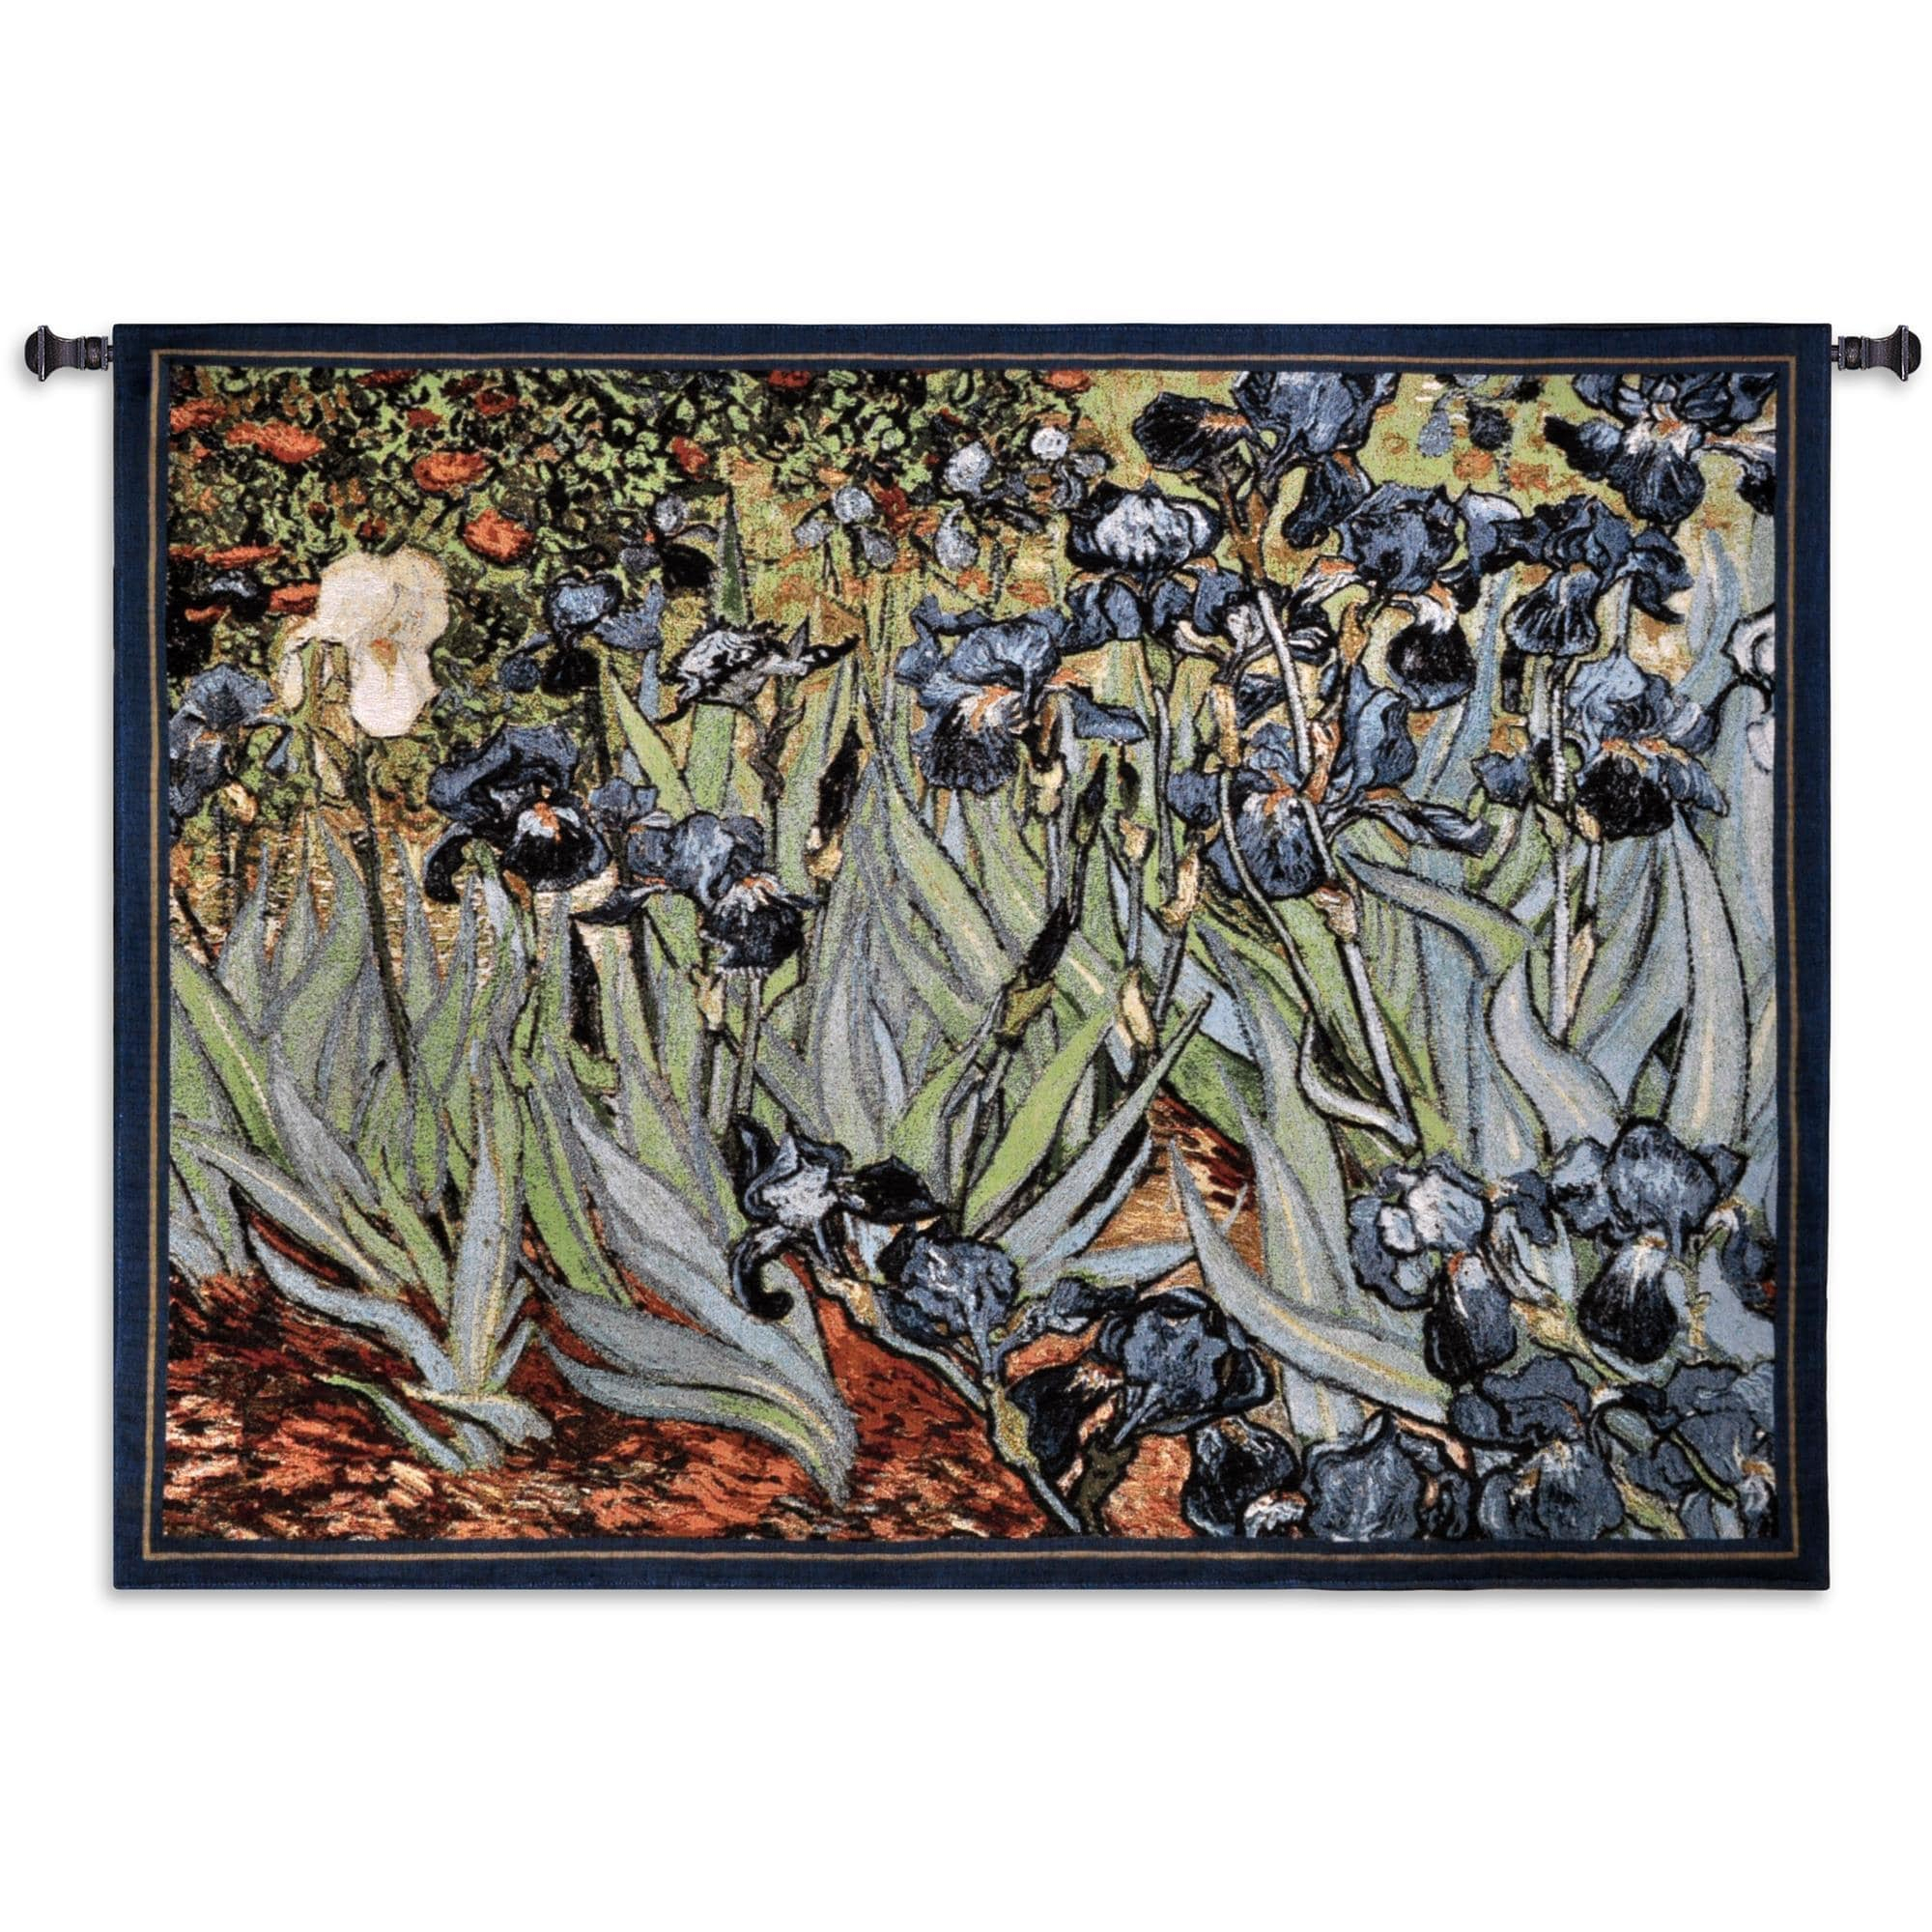 Finearttapestries 1344 Wh Irises Van Gogh Wall Tapestry – Walmart Throughout Most Recently Released Blended Fabric Irises Tapestries (View 6 of 20)